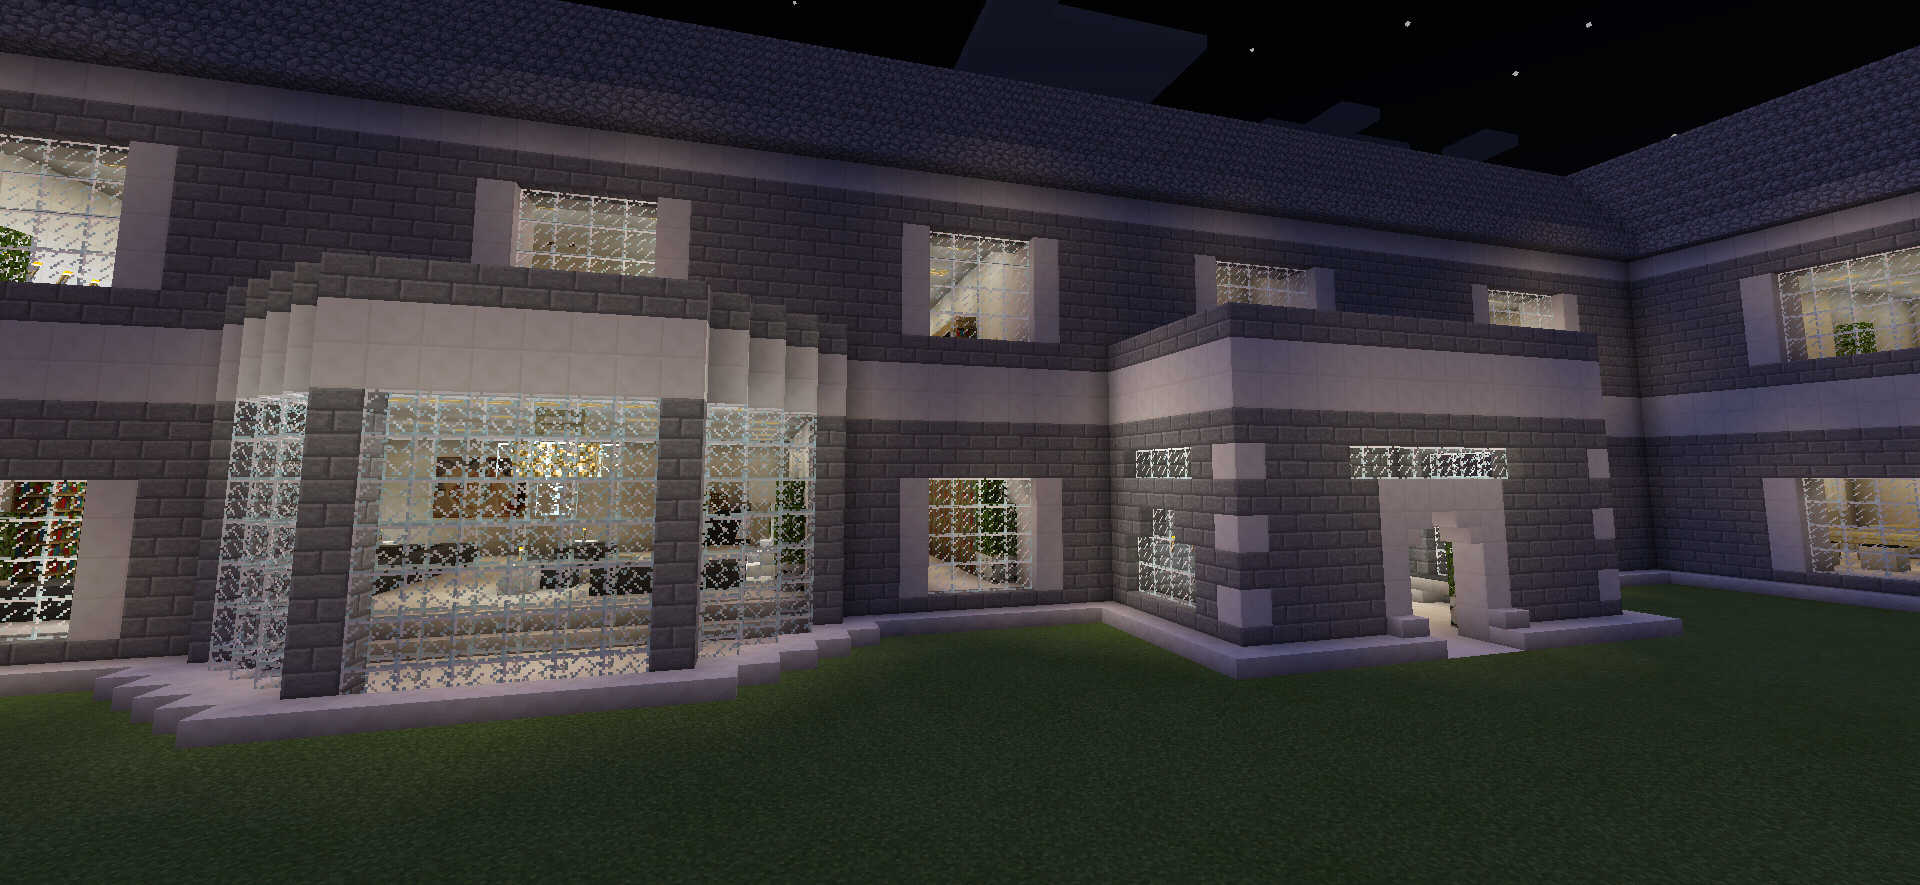 Minecraft Realistic Brick House With Balcony Creations